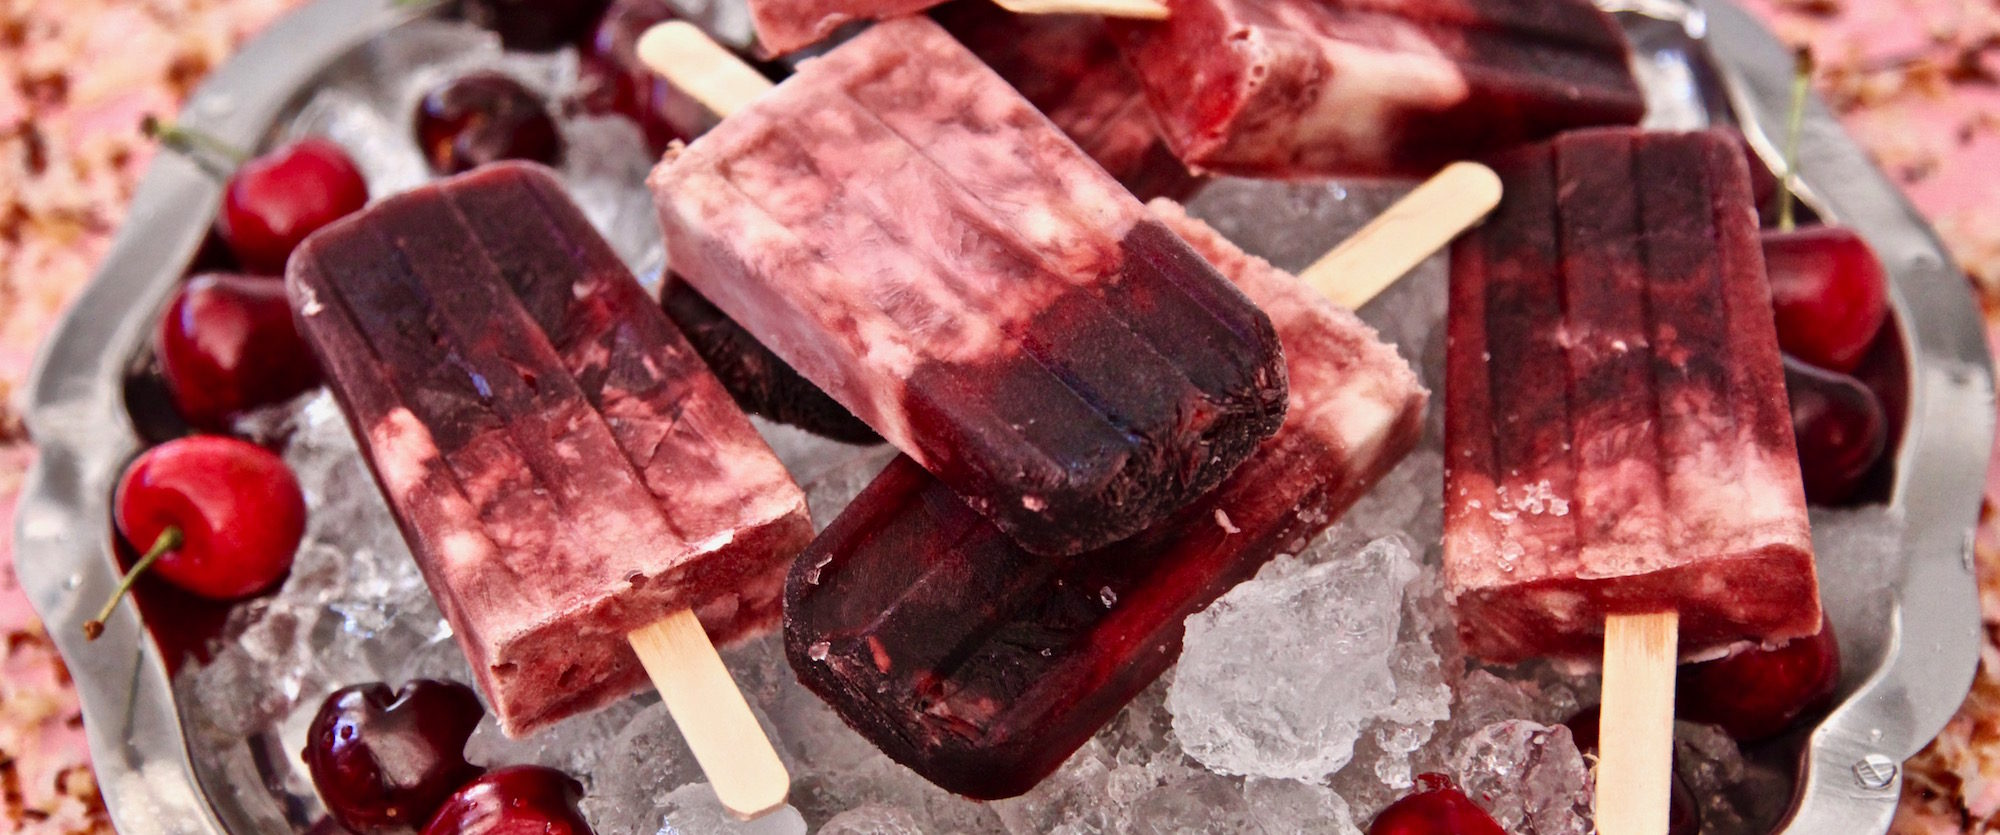 R.W. Knudsen® Cherry Juice is Perfect For Me, My Family, And For Paleta Making Too!